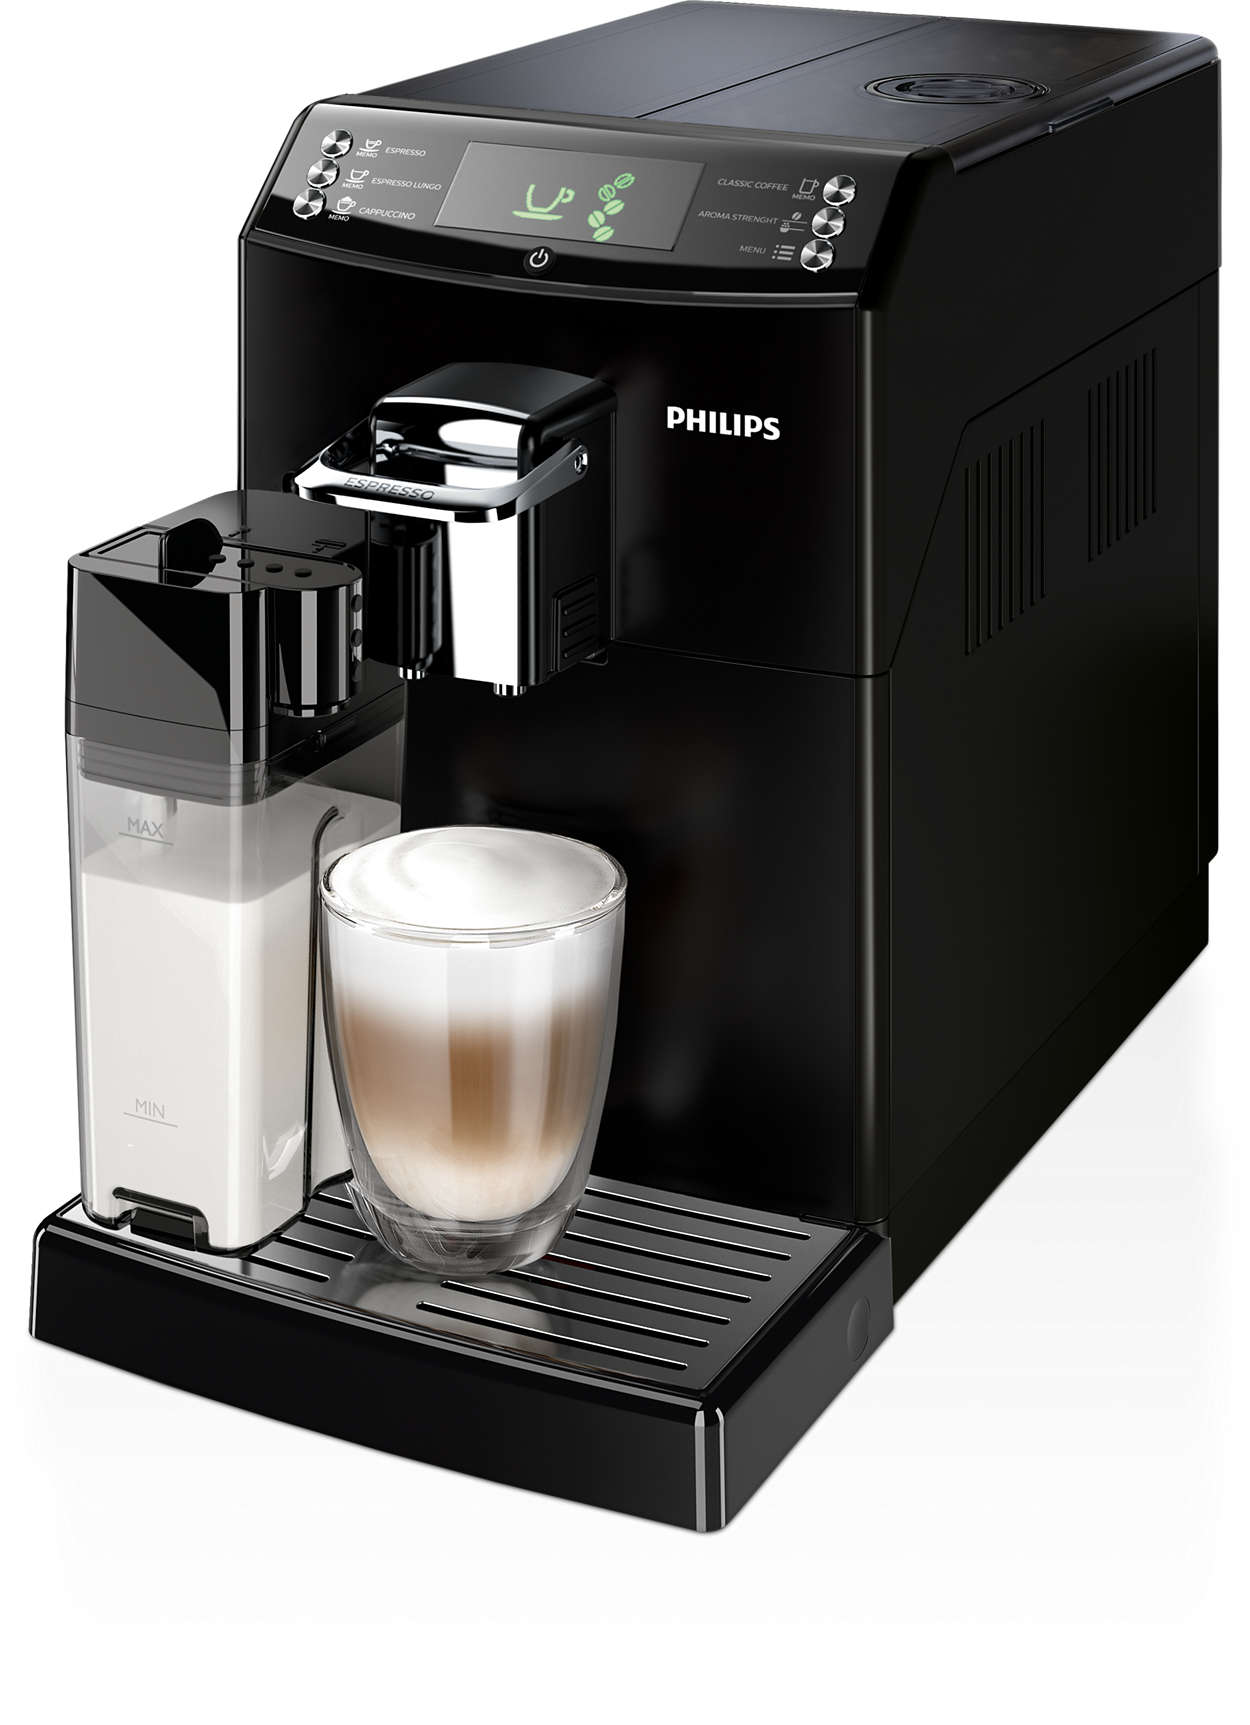 4000 series super automatic espresso machine hd8847 01 philips. Black Bedroom Furniture Sets. Home Design Ideas